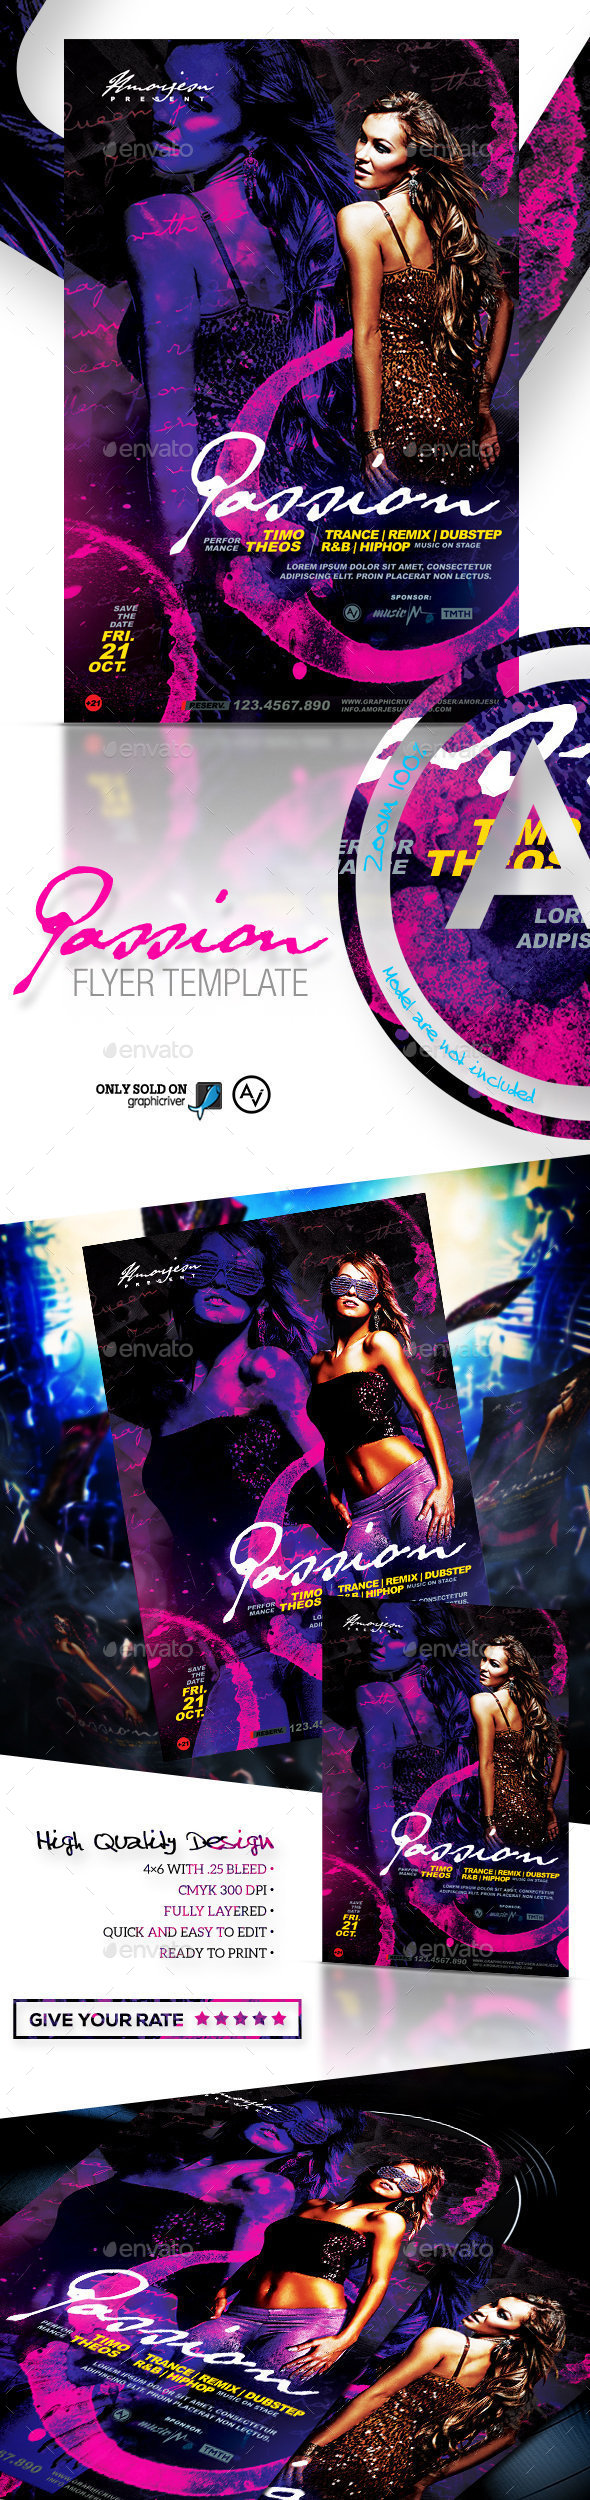 Passion Flyer Template - Clubs & Parties Events